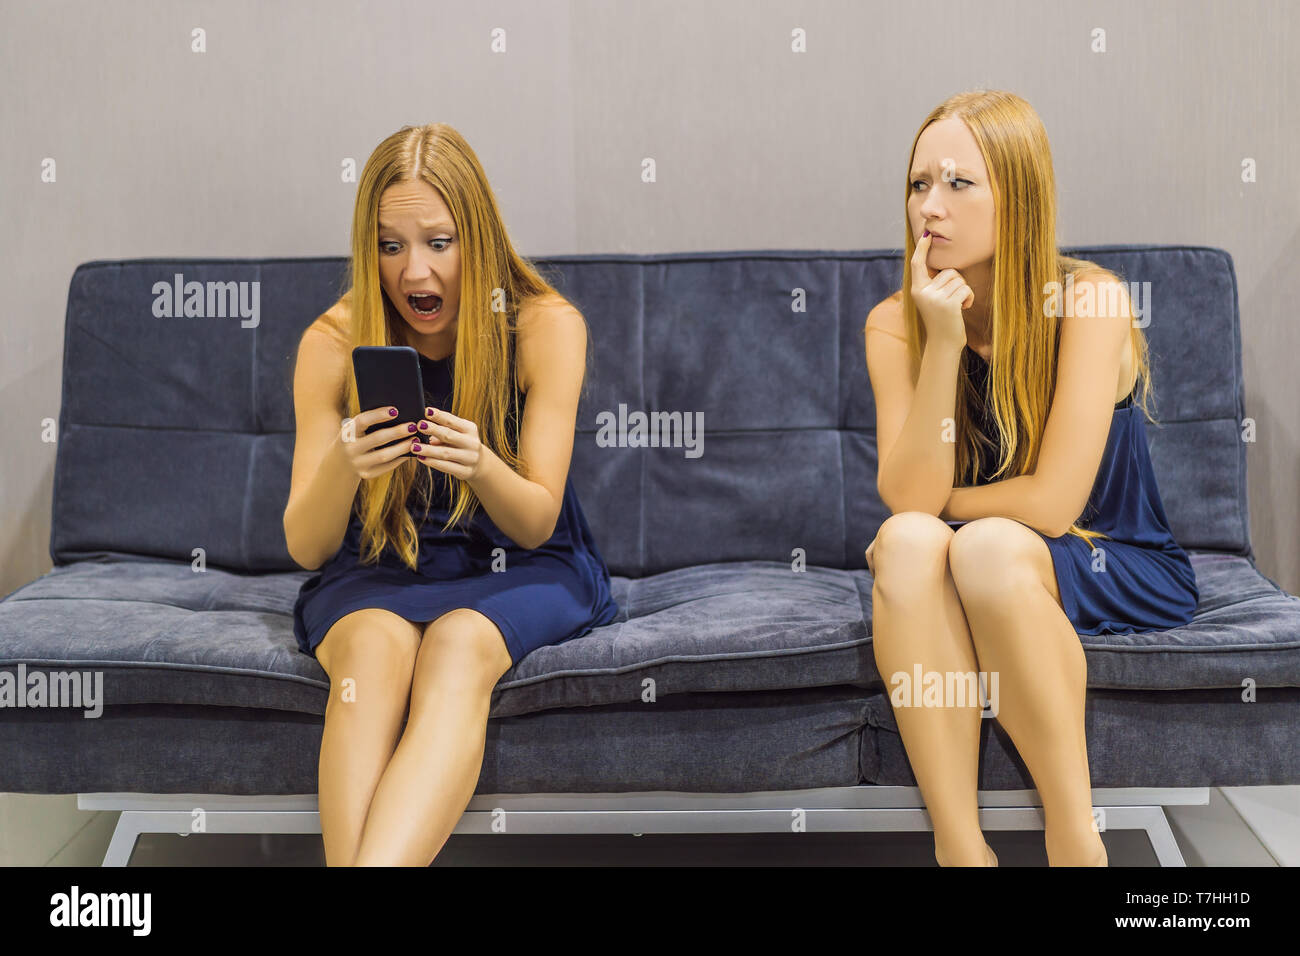 Woman experiencing sad emotions using a smartphone and evaluate their emotions from the side. Emotional Intelligence Concept - Stock Image